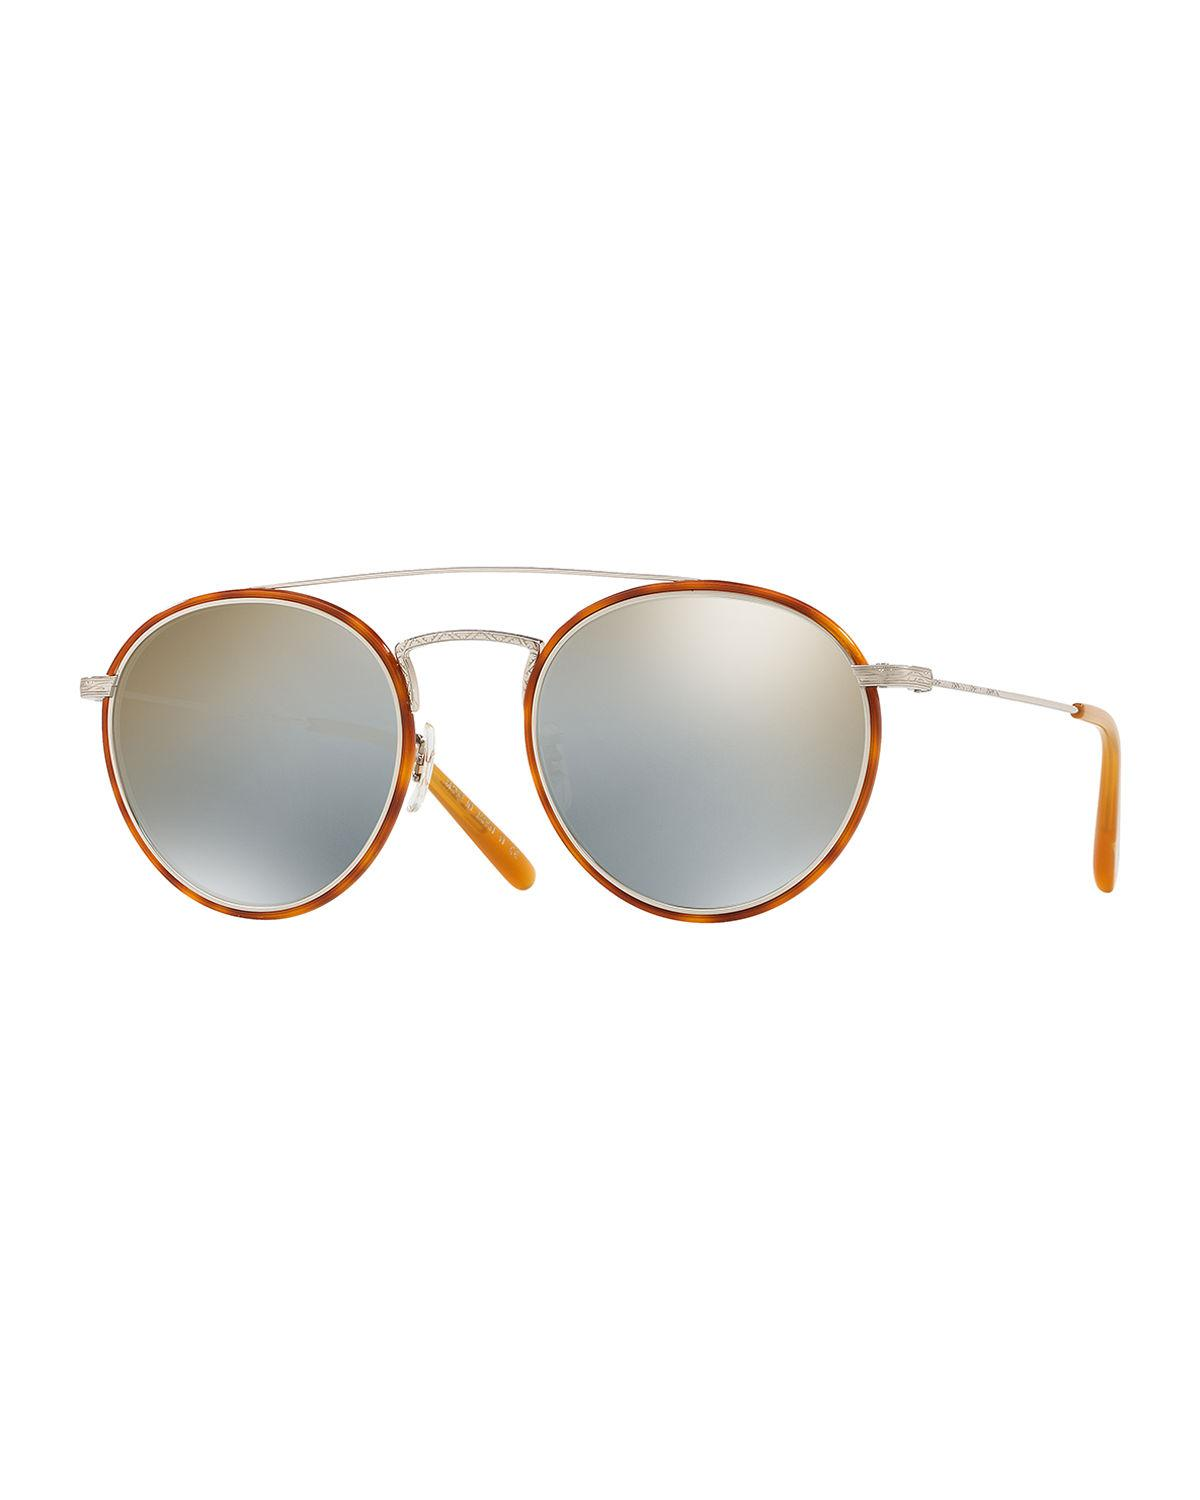 68e8dd9859b0 Oliver Peoples. Brown Men s Row Ellice Round Metal acetate Sunglasses